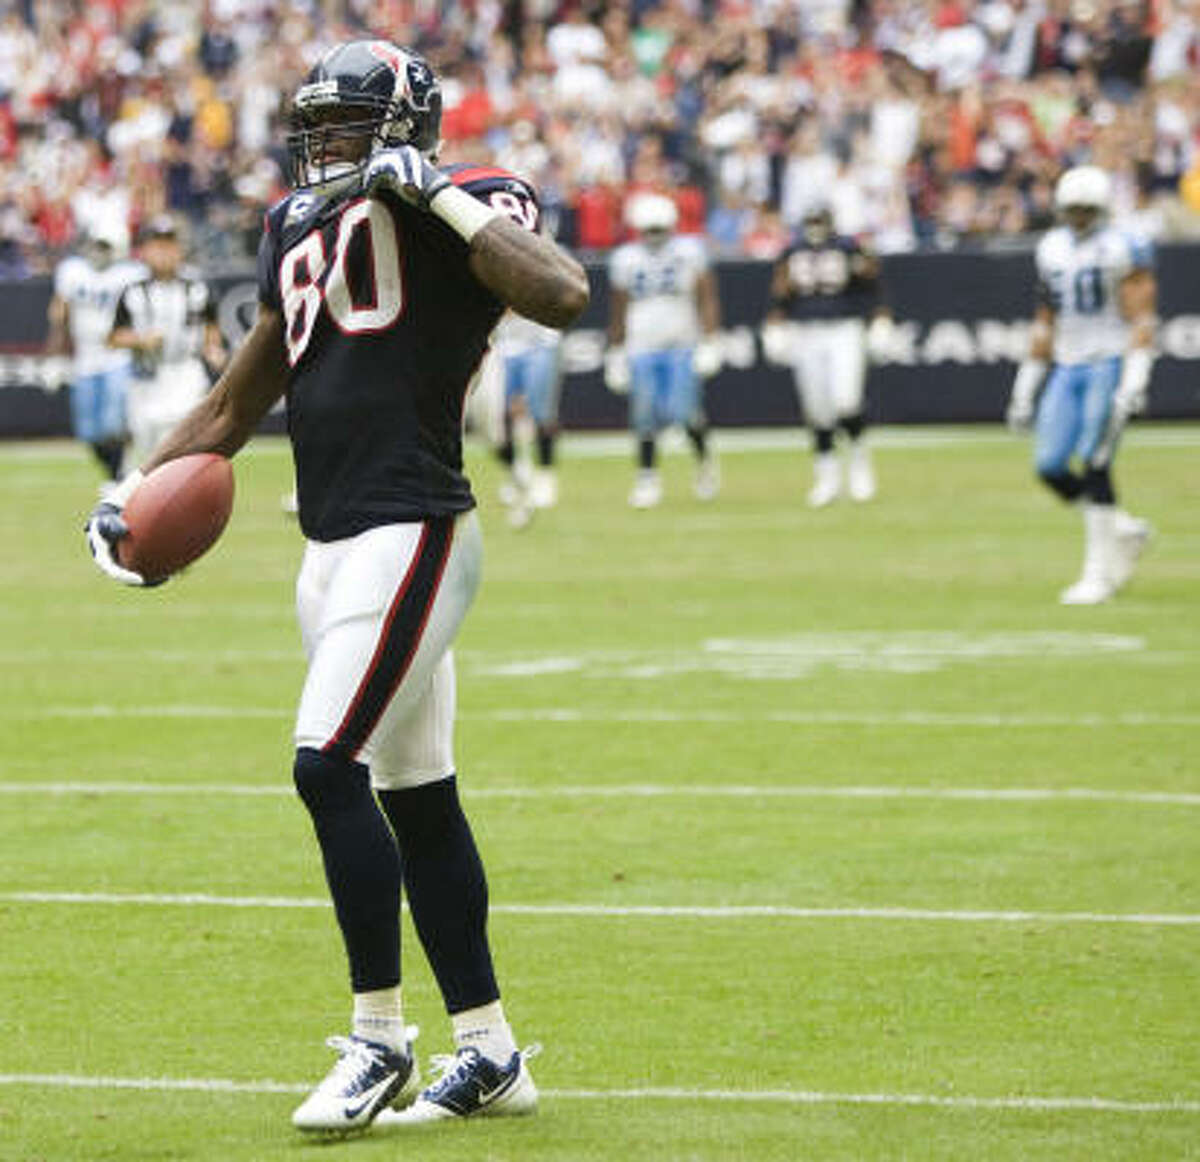 Andre Johnson Position: Wide receiver Receiving yards: 688